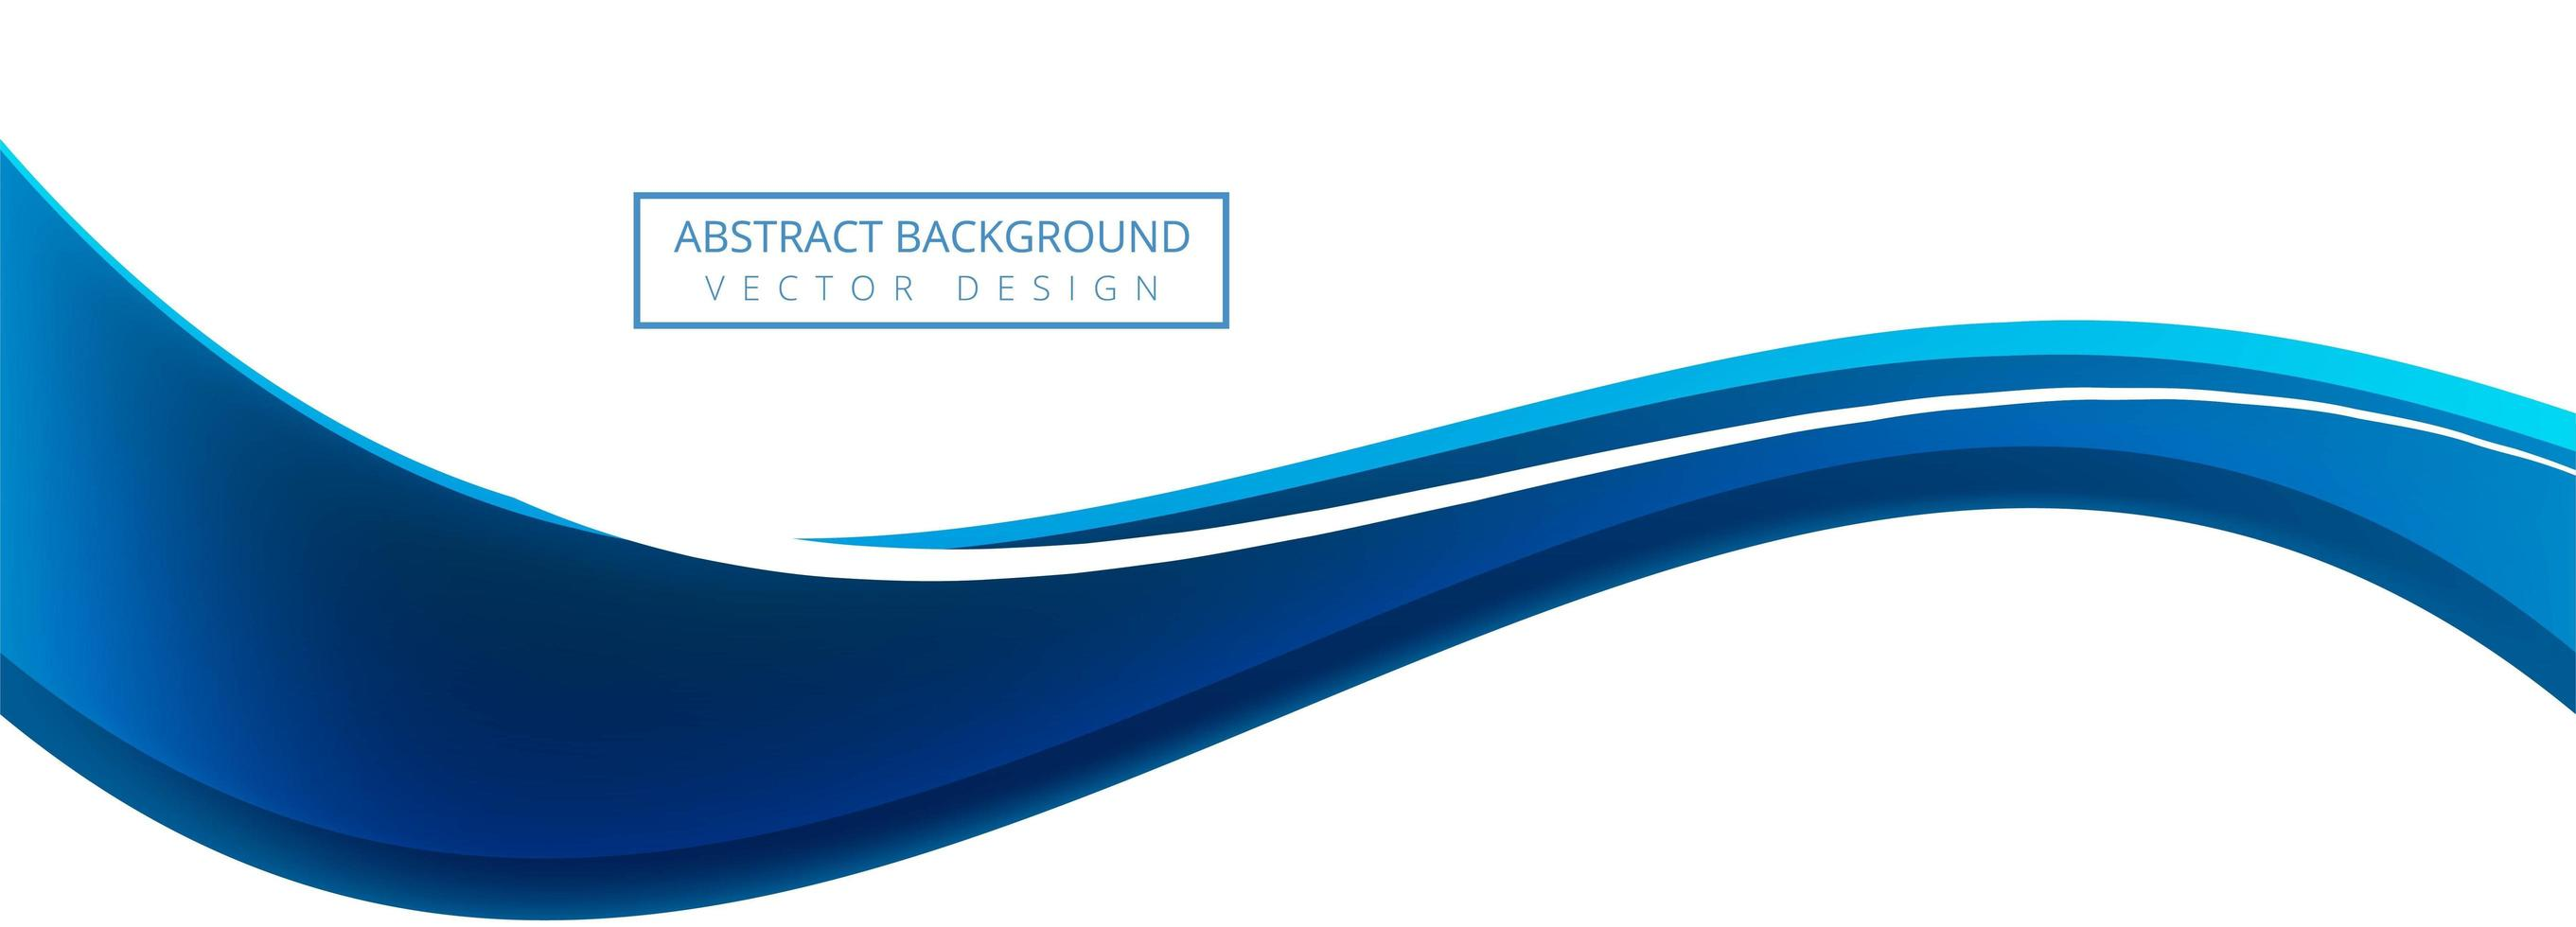 Blue creative business wave banner background vector